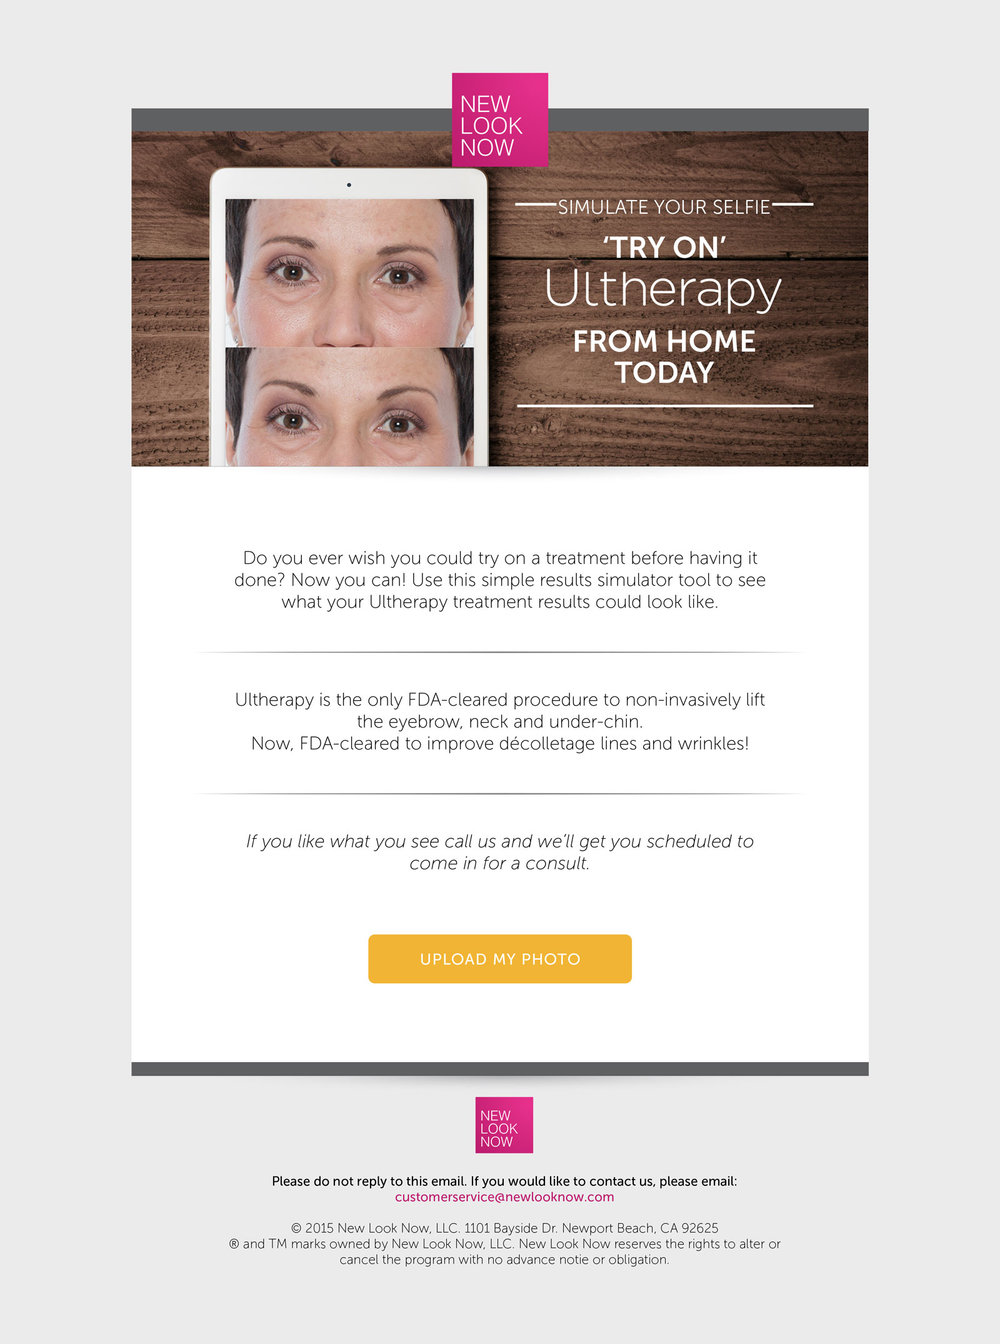 ultherapy-consumer-email.jpg